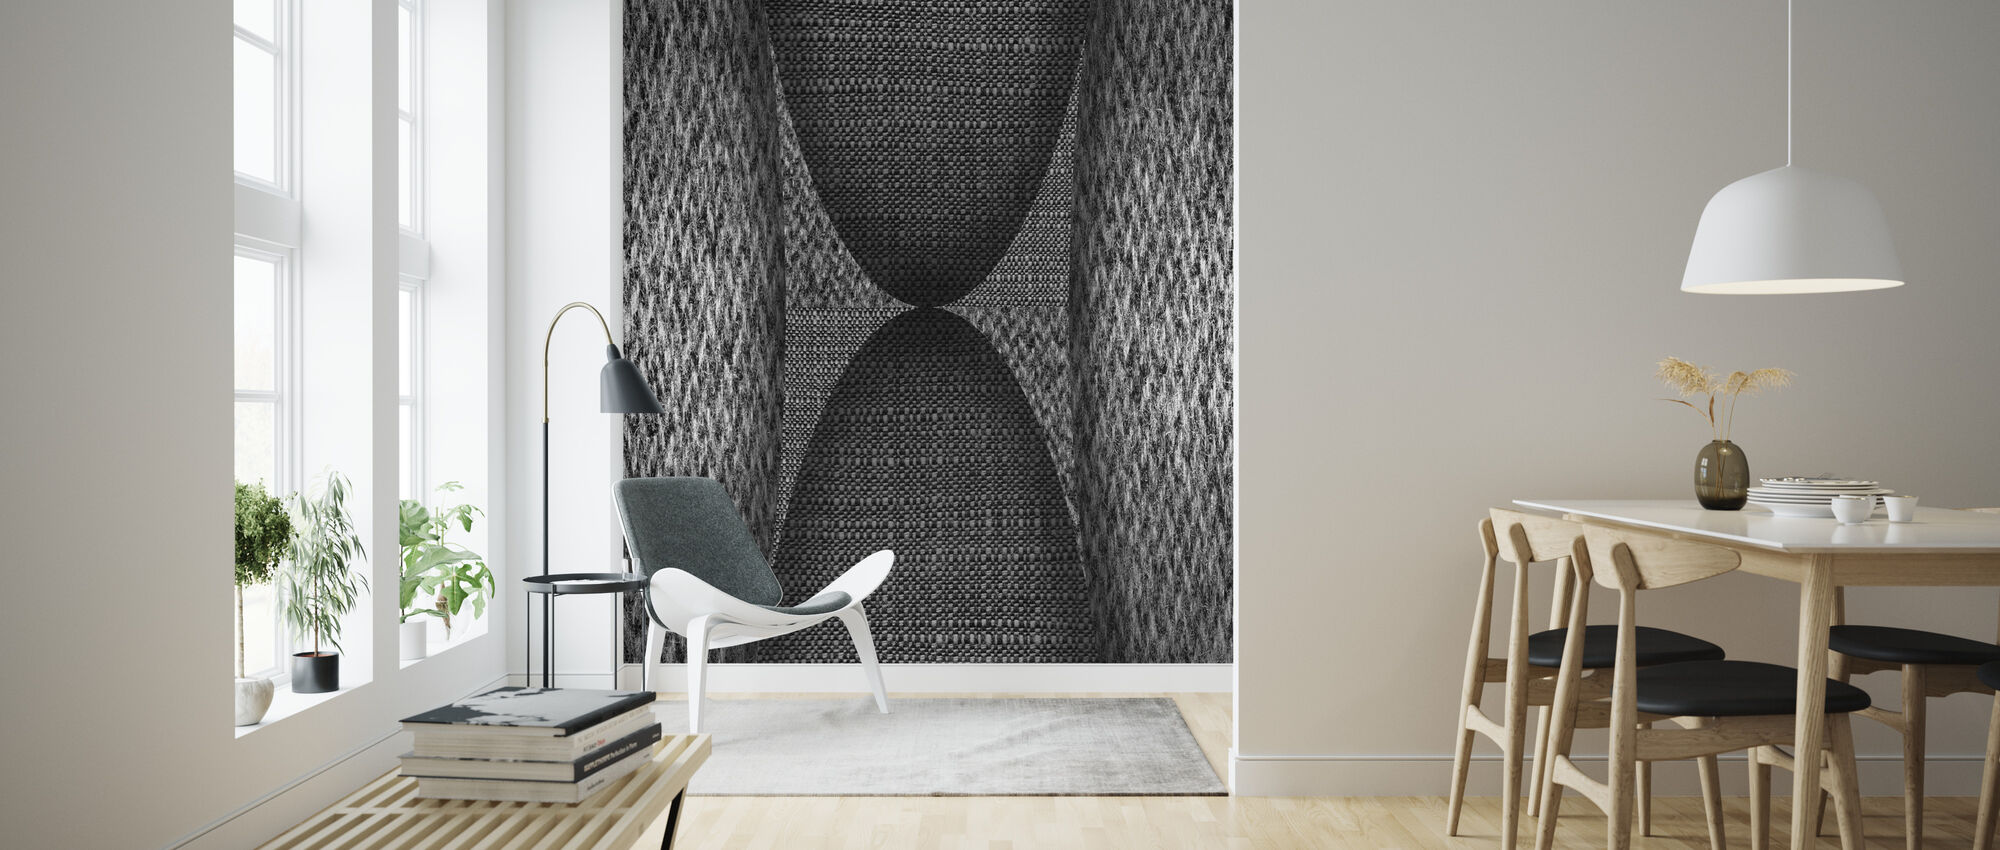 Clothed Wall - Wallpaper - Living Room